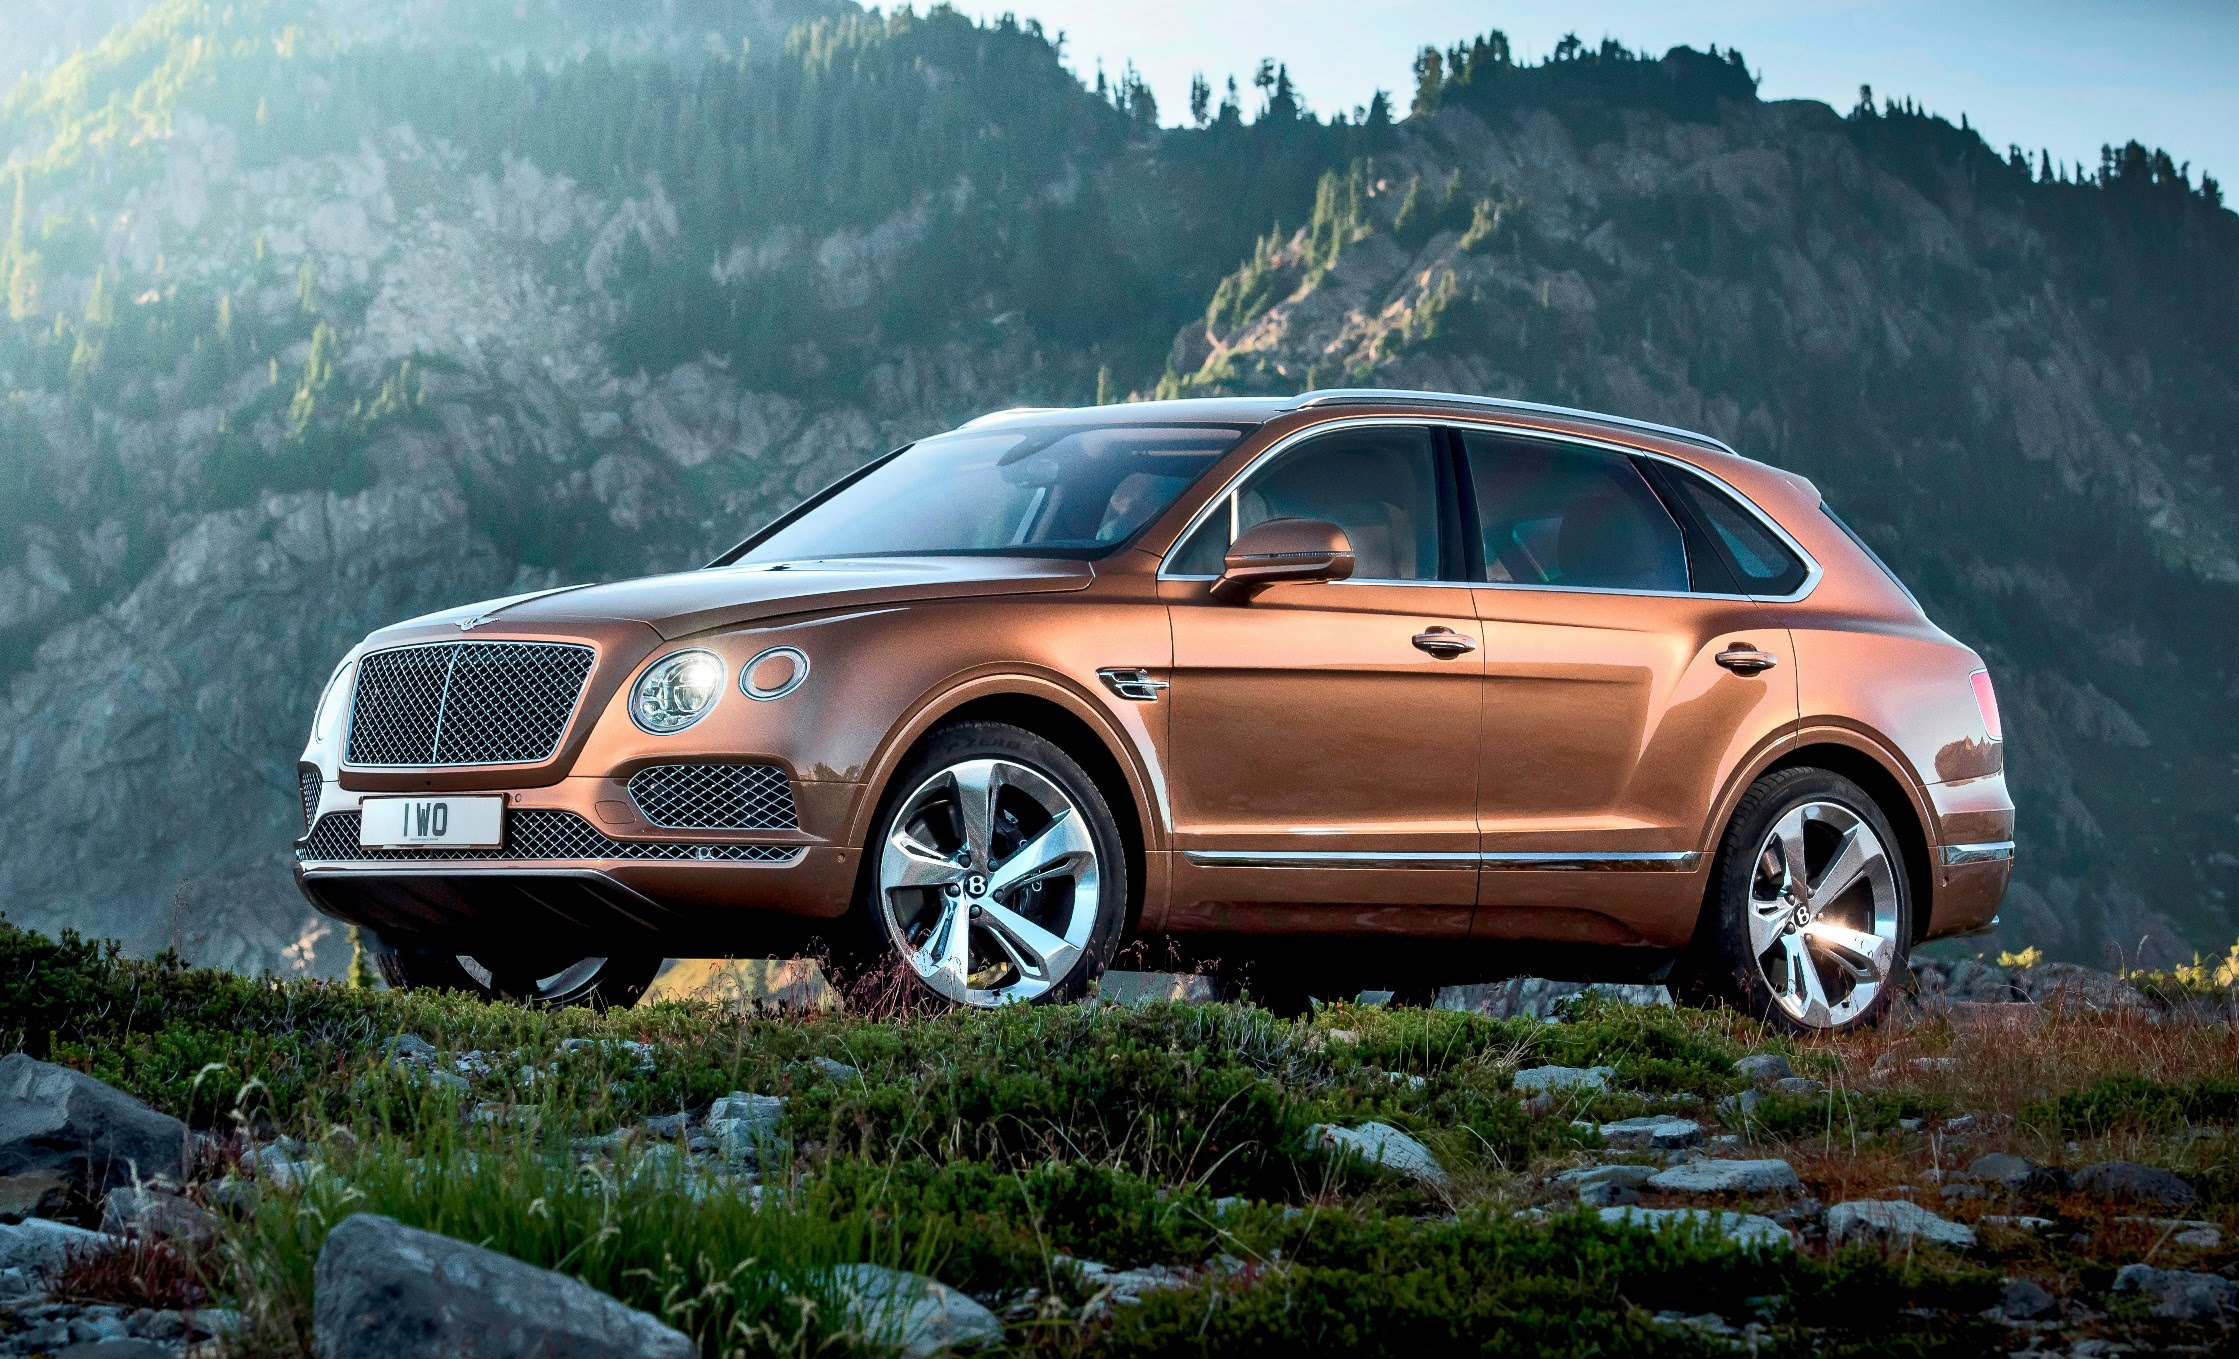 Bentley Bentayga Wallpaper